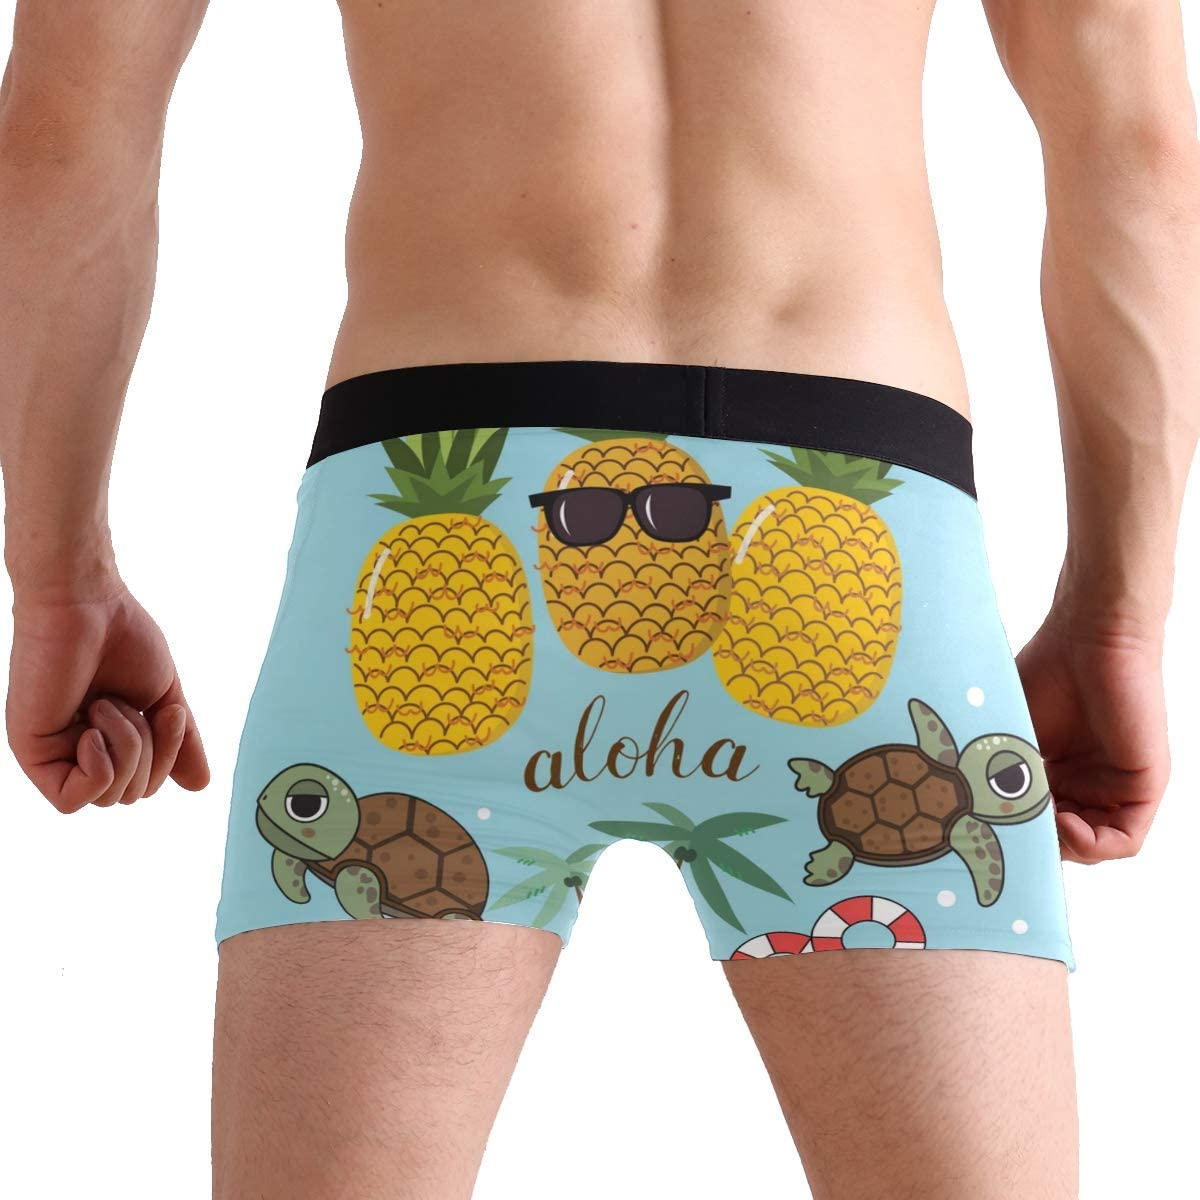 SUABO Mens 2-Pack Boxer Briefs Polyester Underwear Trunk Underwear with Pineapple with Tortoise Design